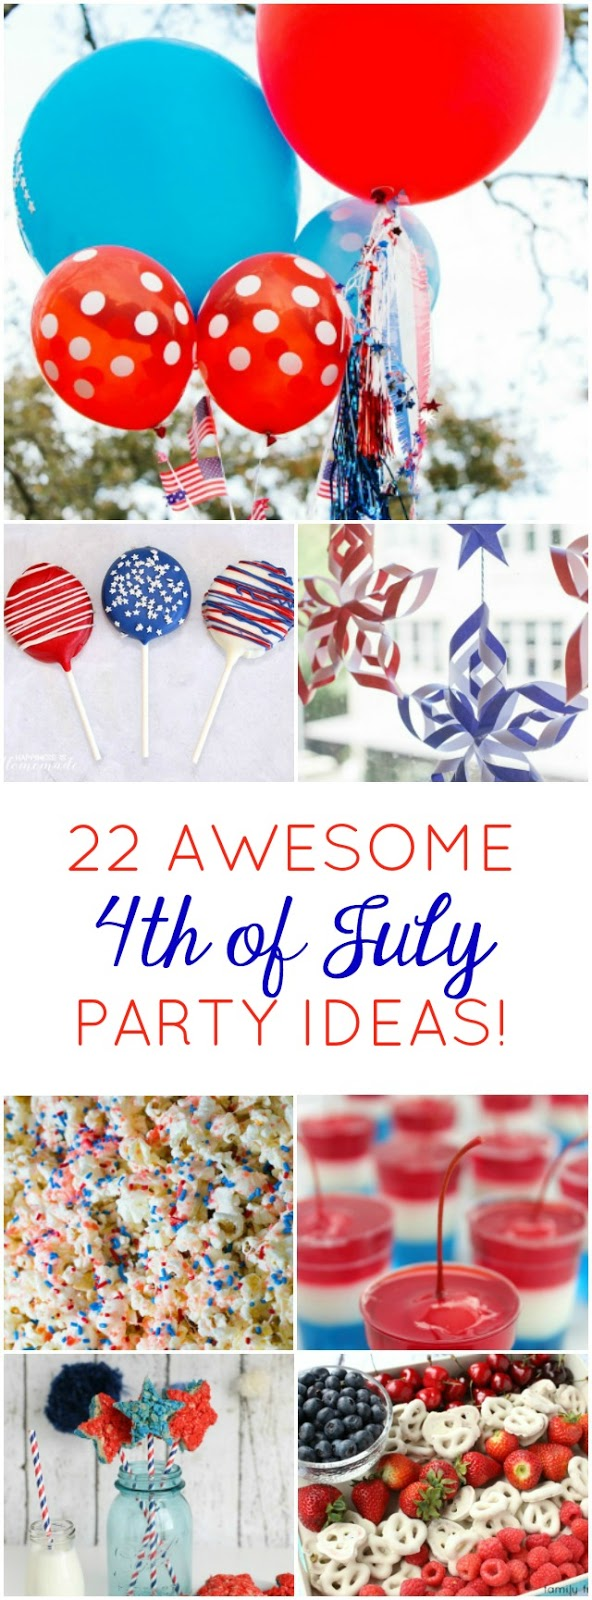 Such cute ideas! Try a couple of these simple patriotic crafts and recipes to make your 4th of July extra special!